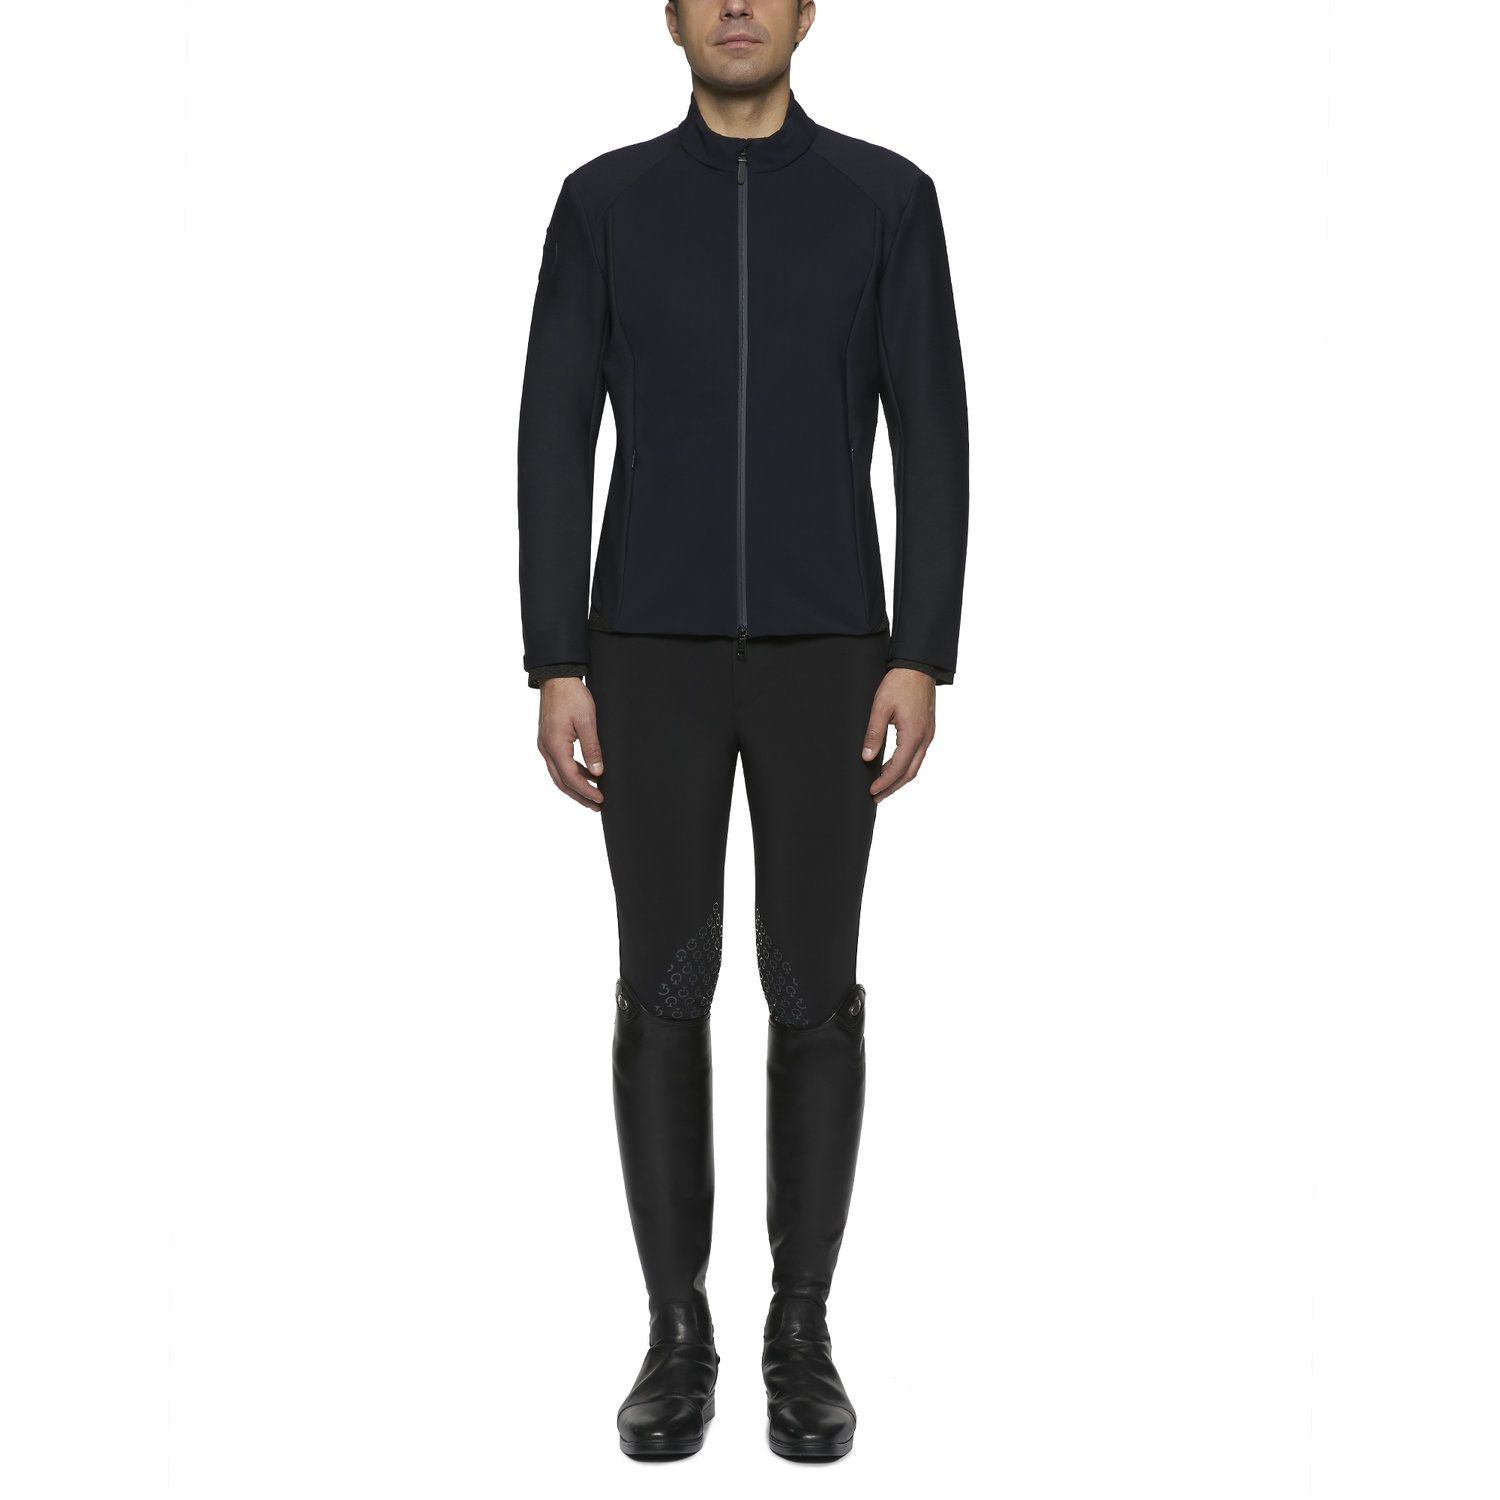 Men's lightweight jersey and piqué jacket